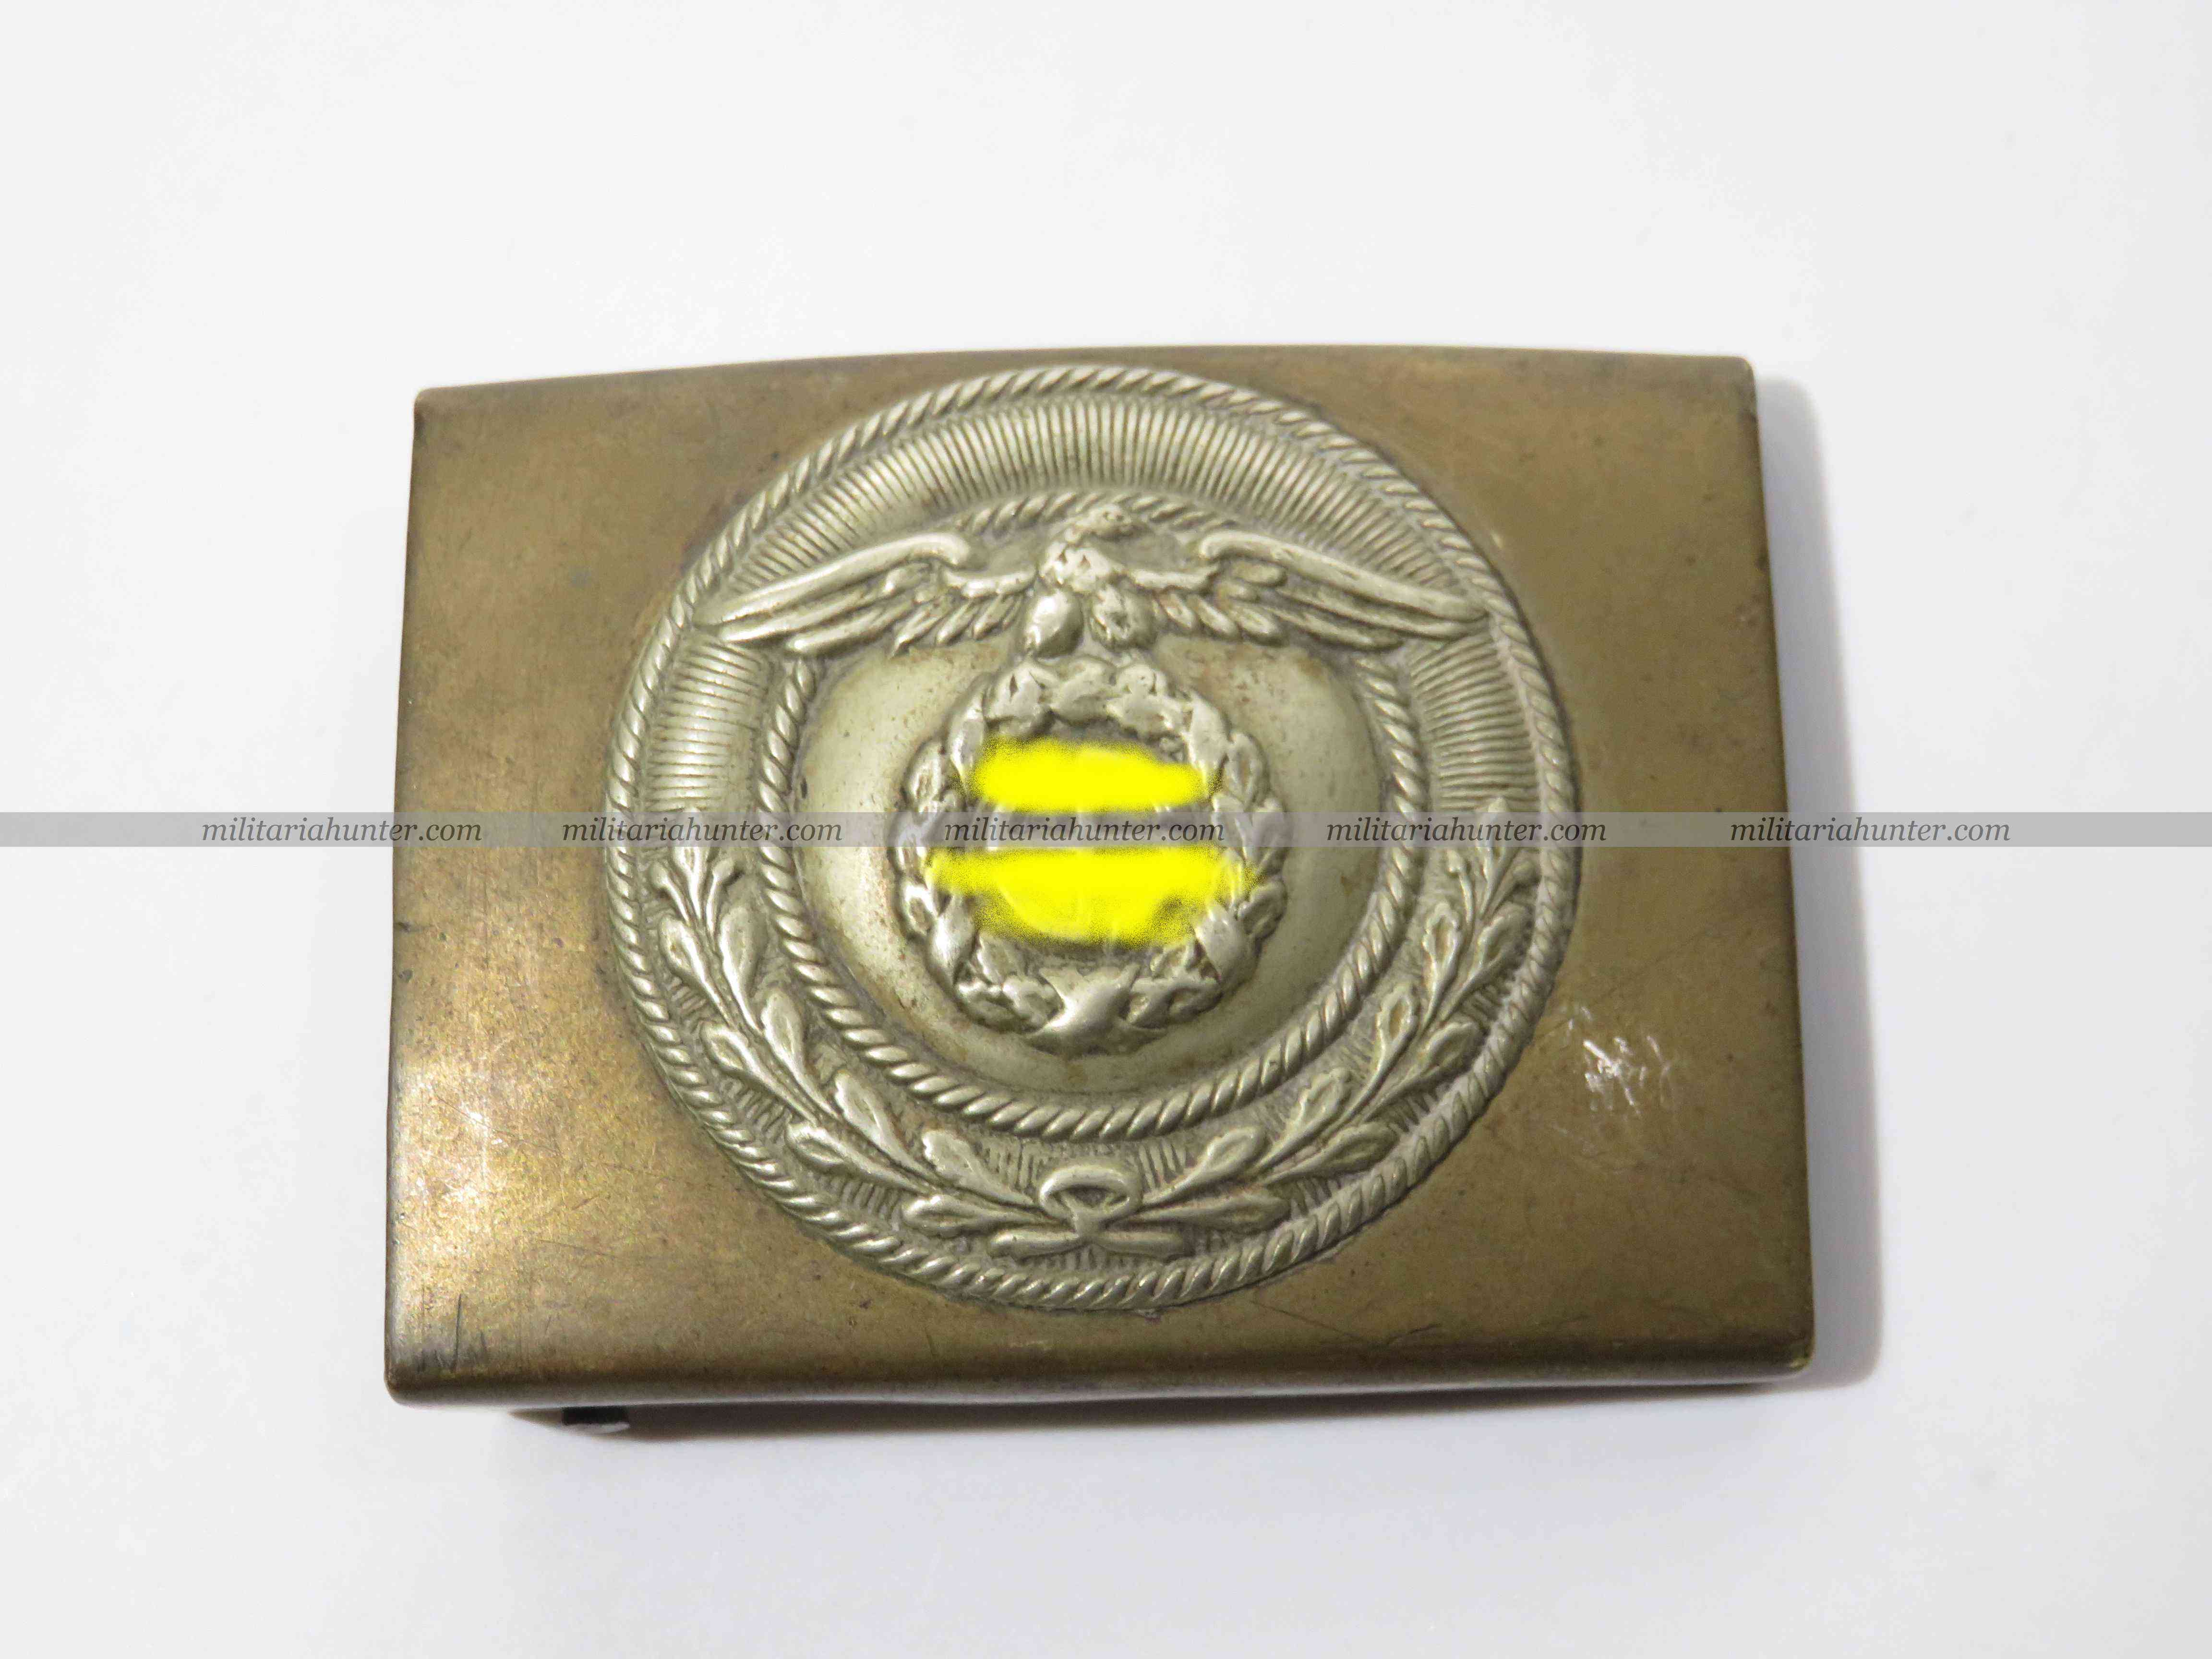 militaria : SA Belt buckle 1st pattern - boucle S.A. 1er type